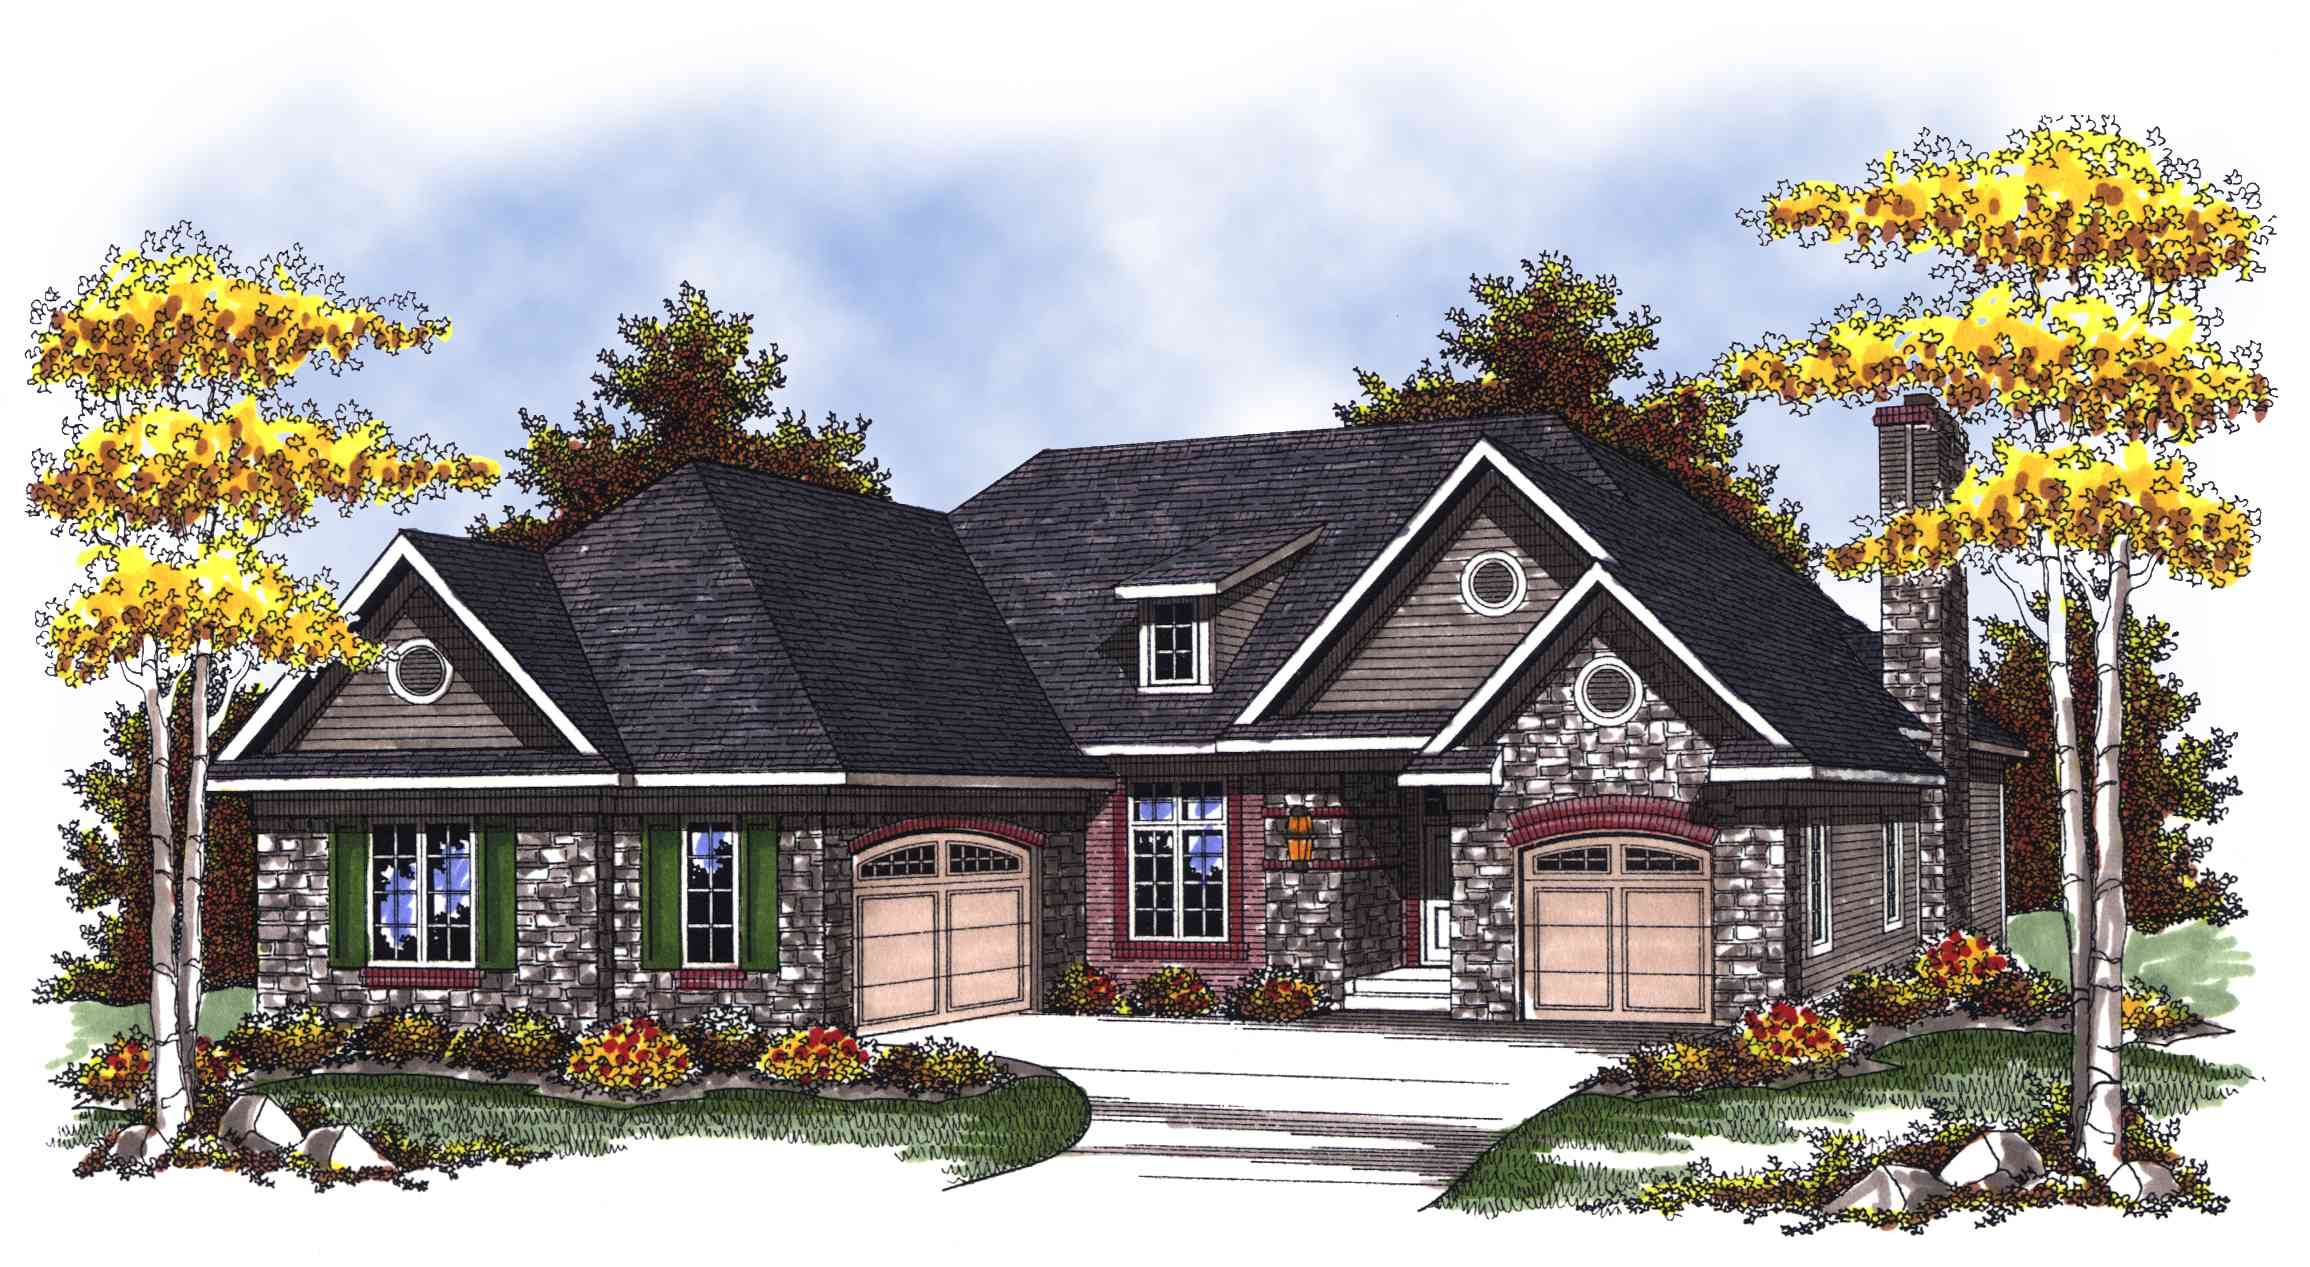 Split garage ranch home plan 89266ah 1st floor master for Ranch house with garage